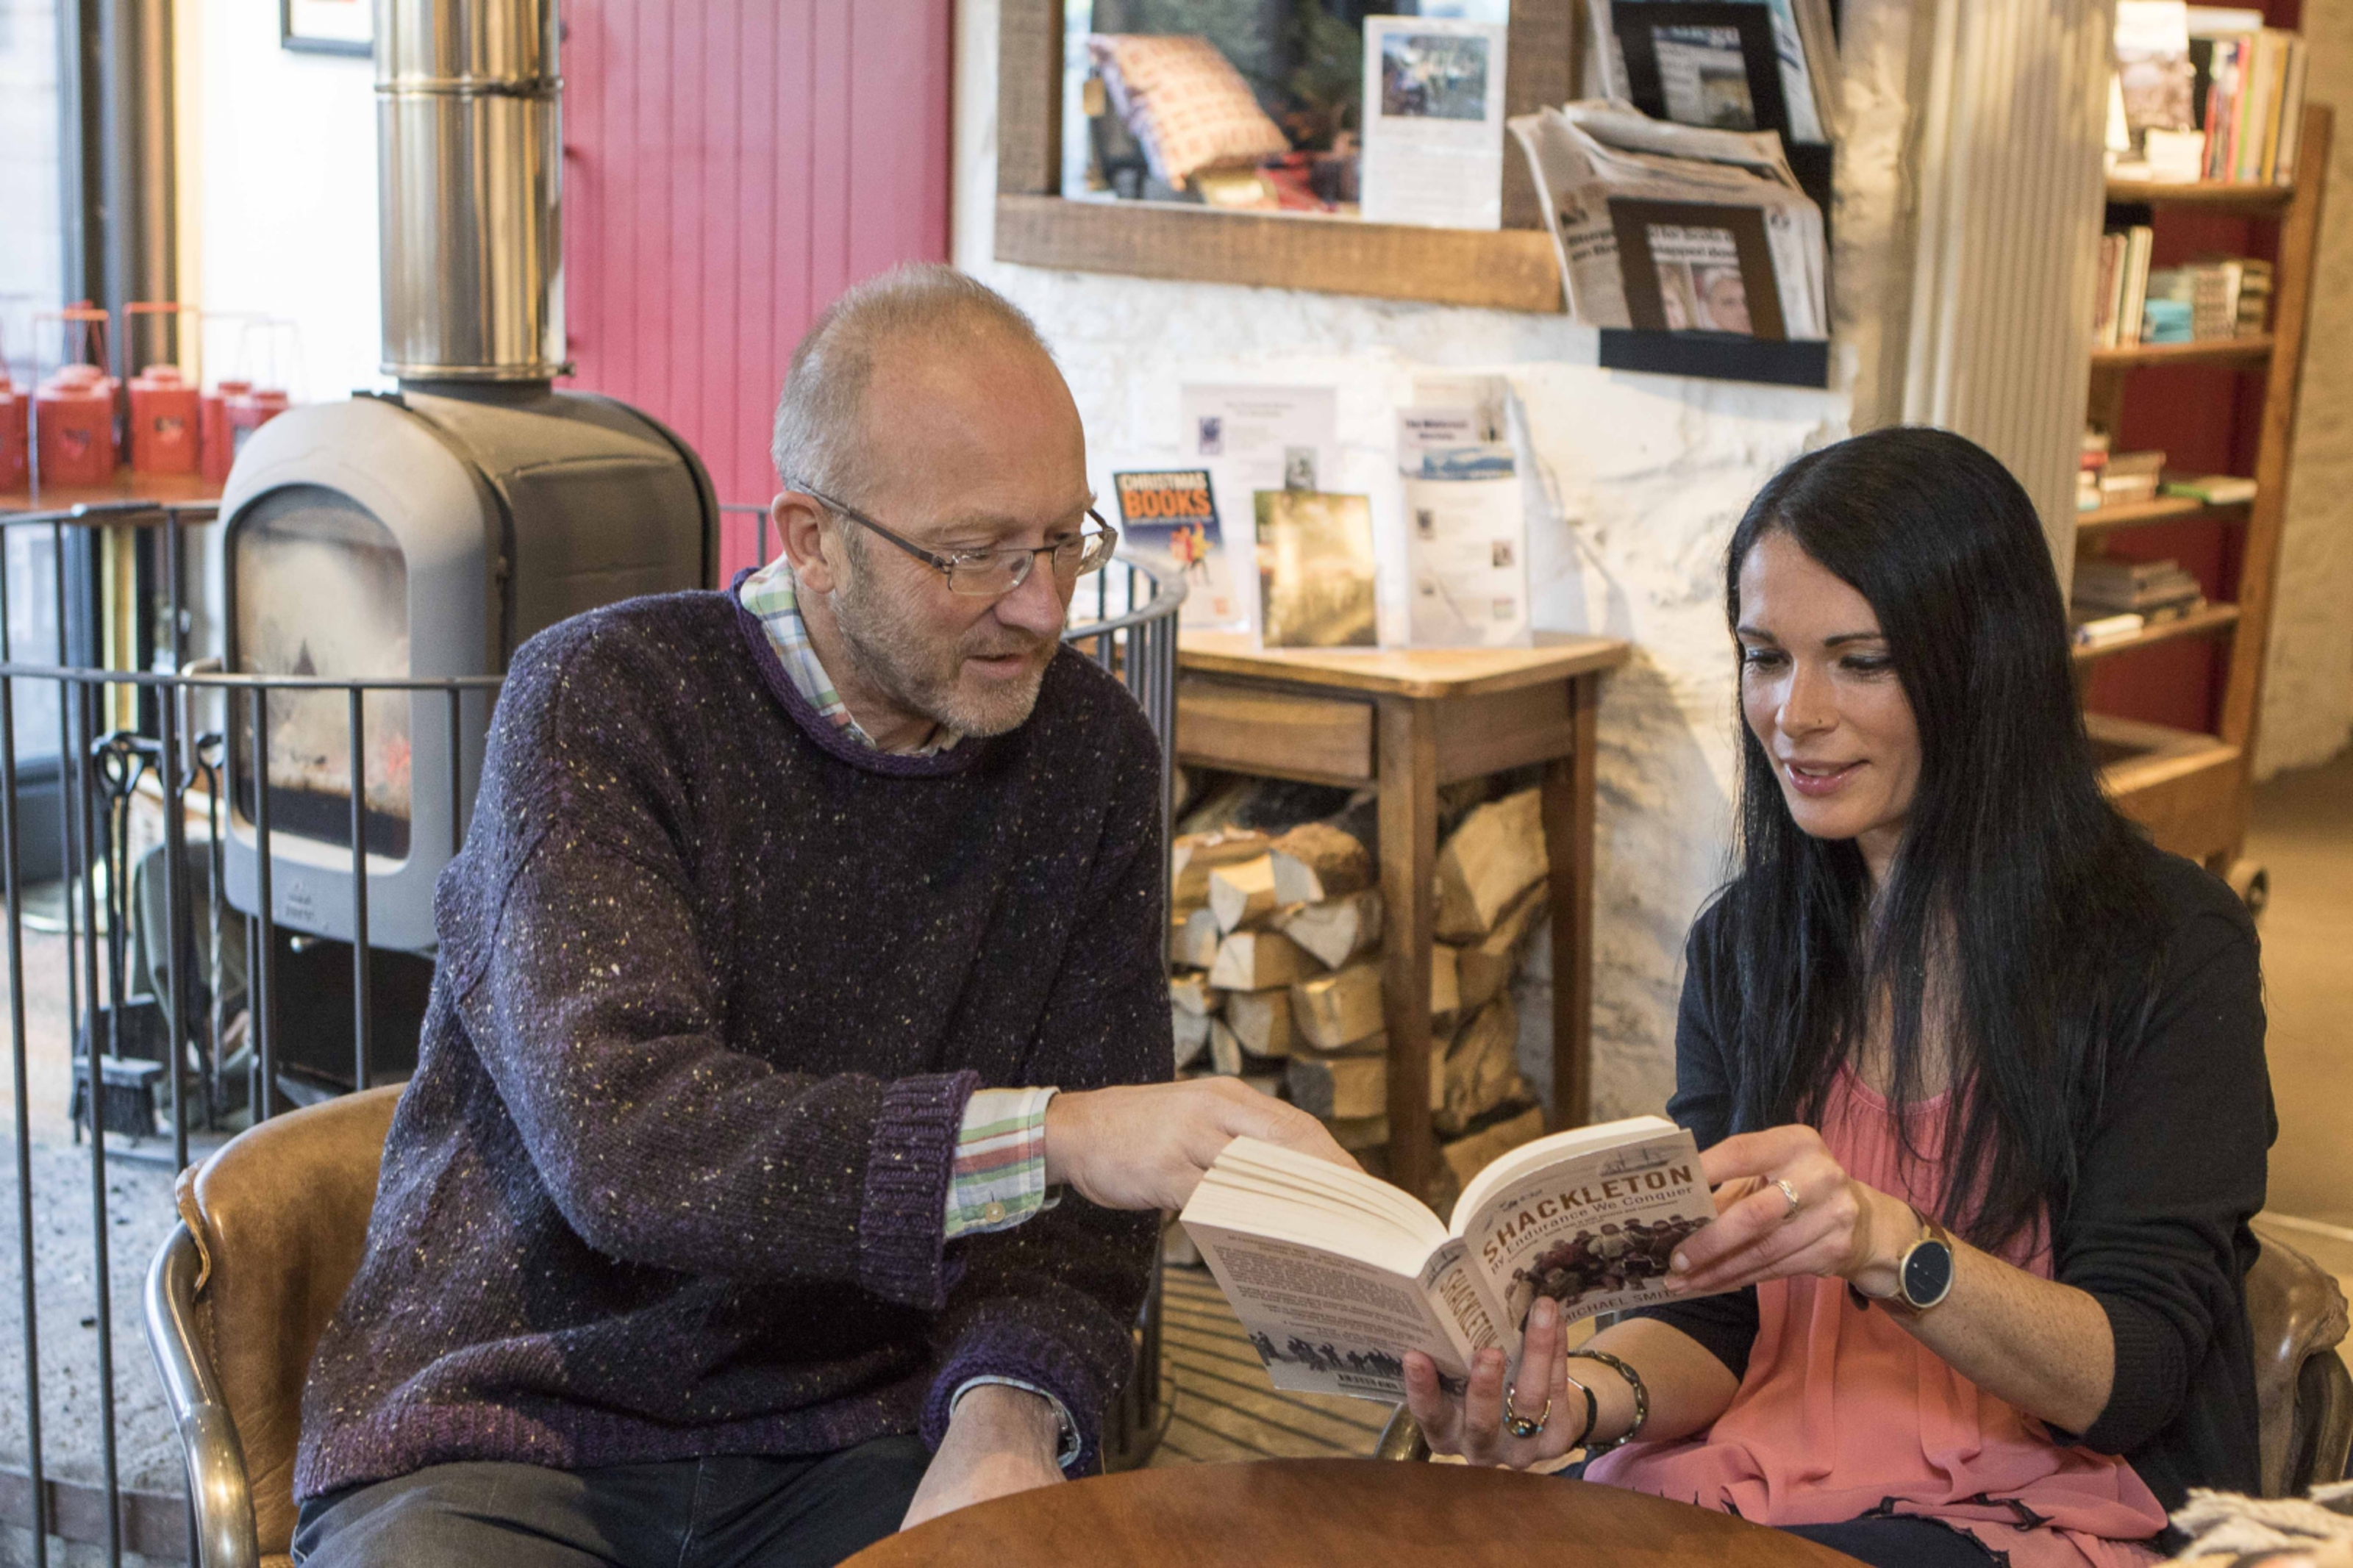 Kevin Ramage, owner of The Watermill, shows Gayle one of the shop's many books.